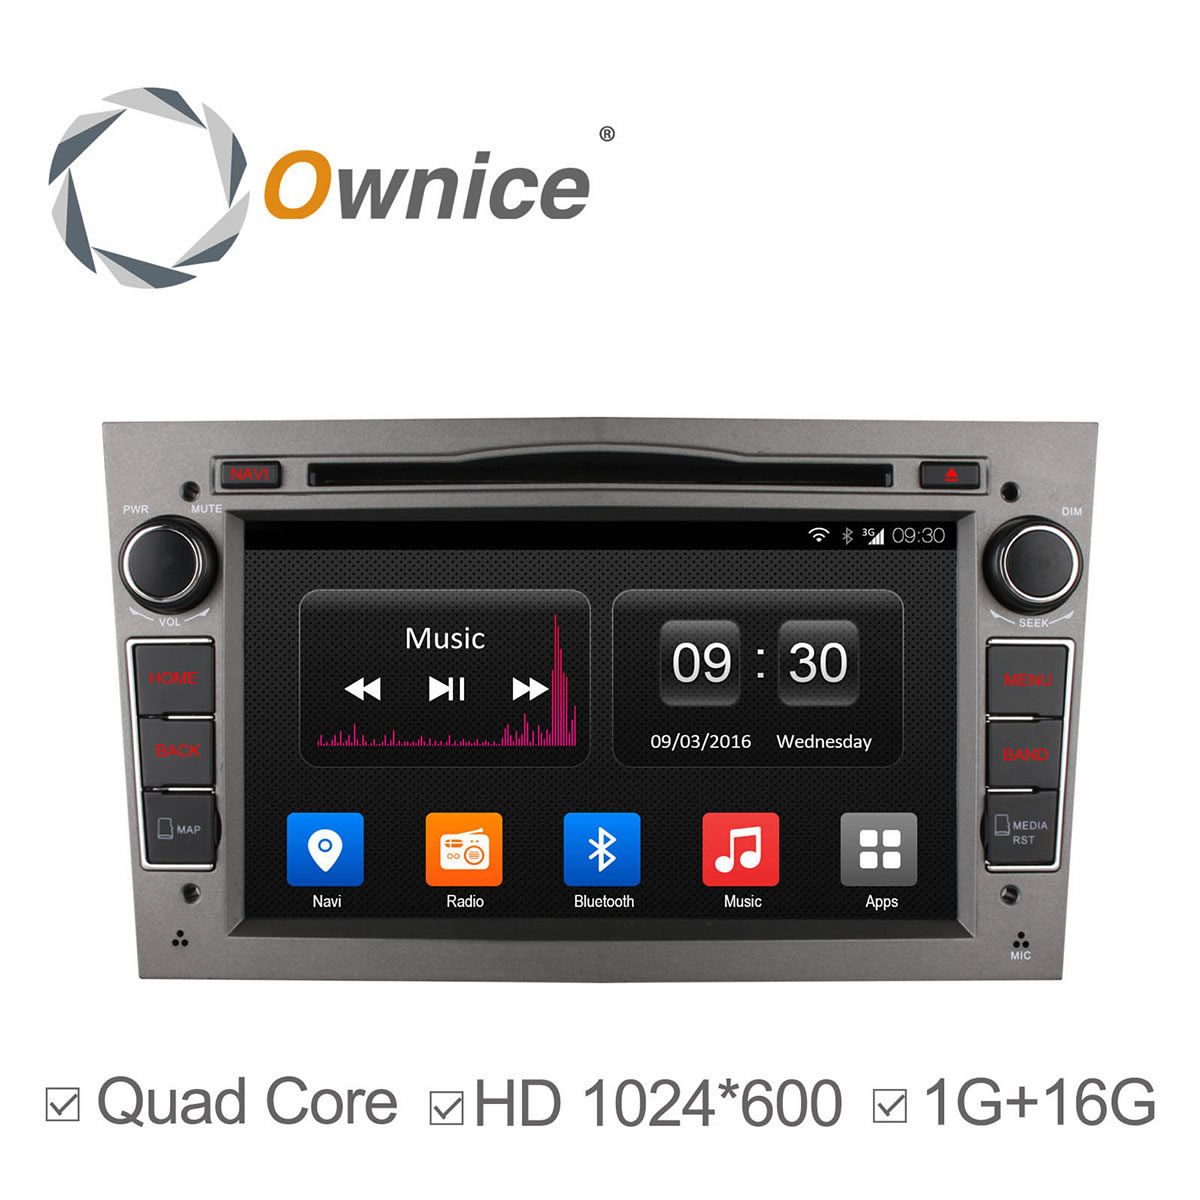 Android 4.4 Quad Core 2 din car DVD Player car stereo With GPS Navigation For Opel with radio BT 1024*600 support 3G DAB+ OBD(China (Mainland))